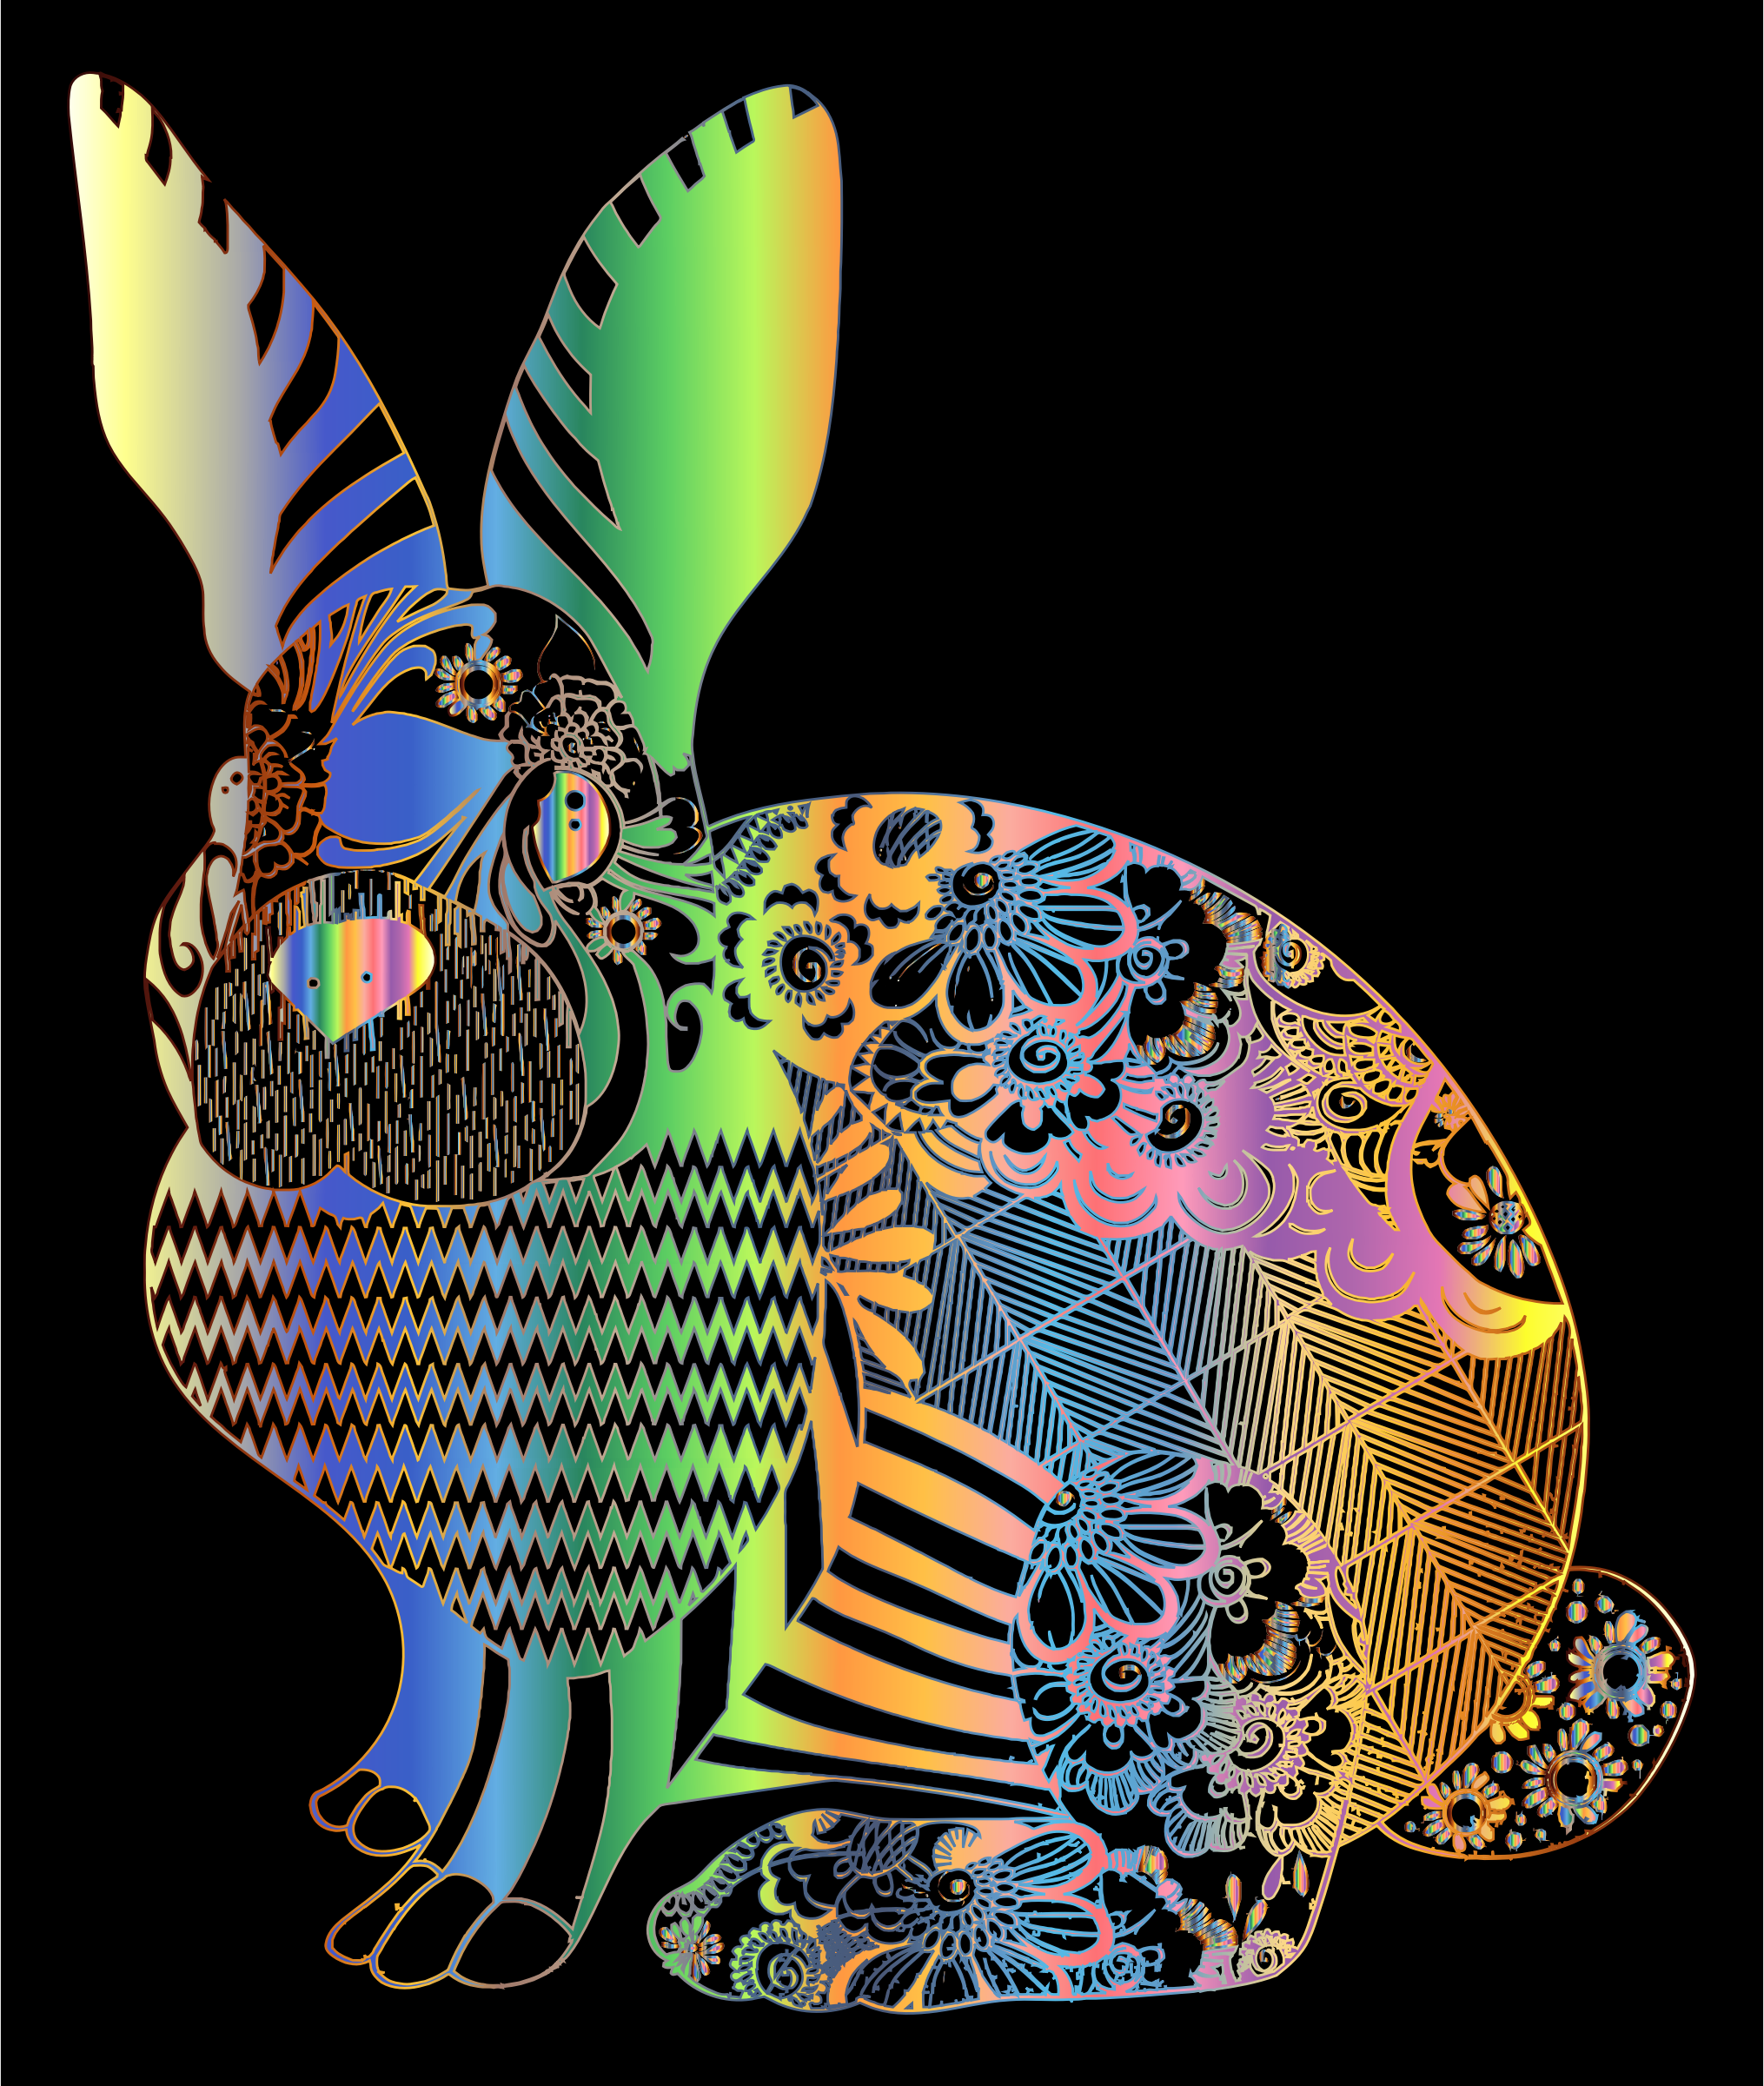 Chromatic Floral Rabbit by GDJ